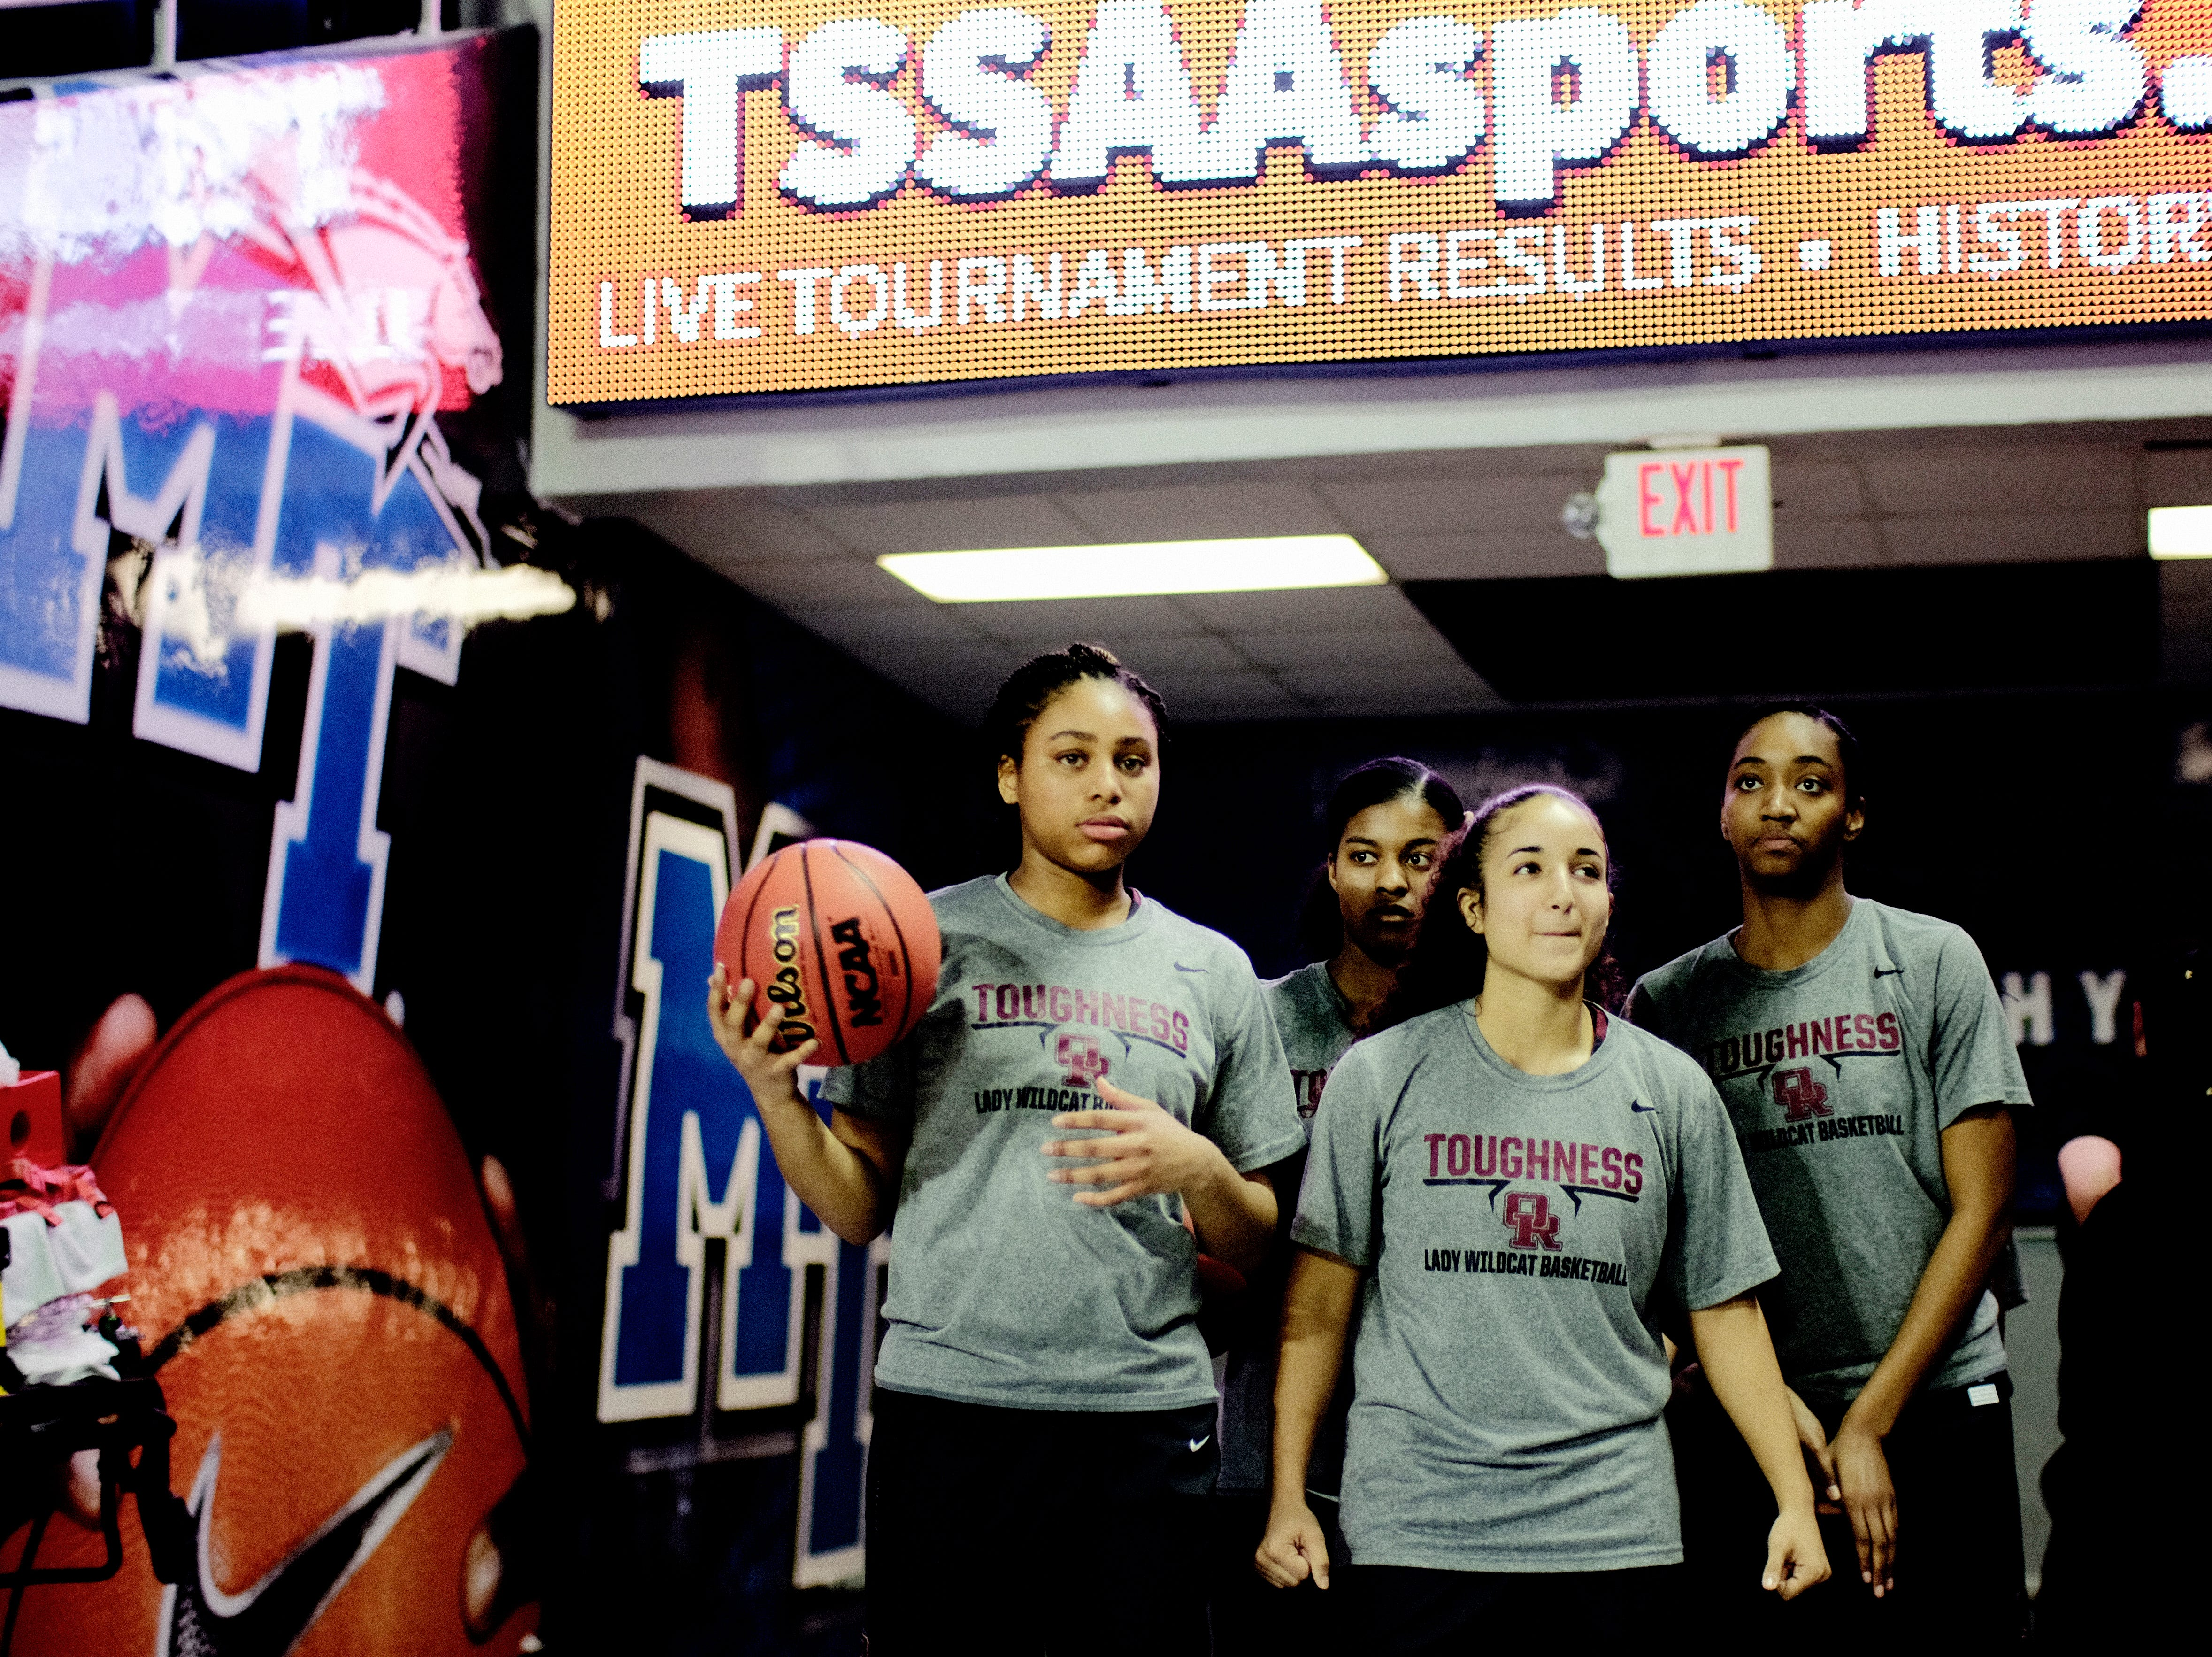 Oak Ridge prepares to take the court before a game against Bradley Central at the TSSAA girls state tournament at the Murphy Center in Murfreesboro, Tennessee on Friday, March 8, 2019.